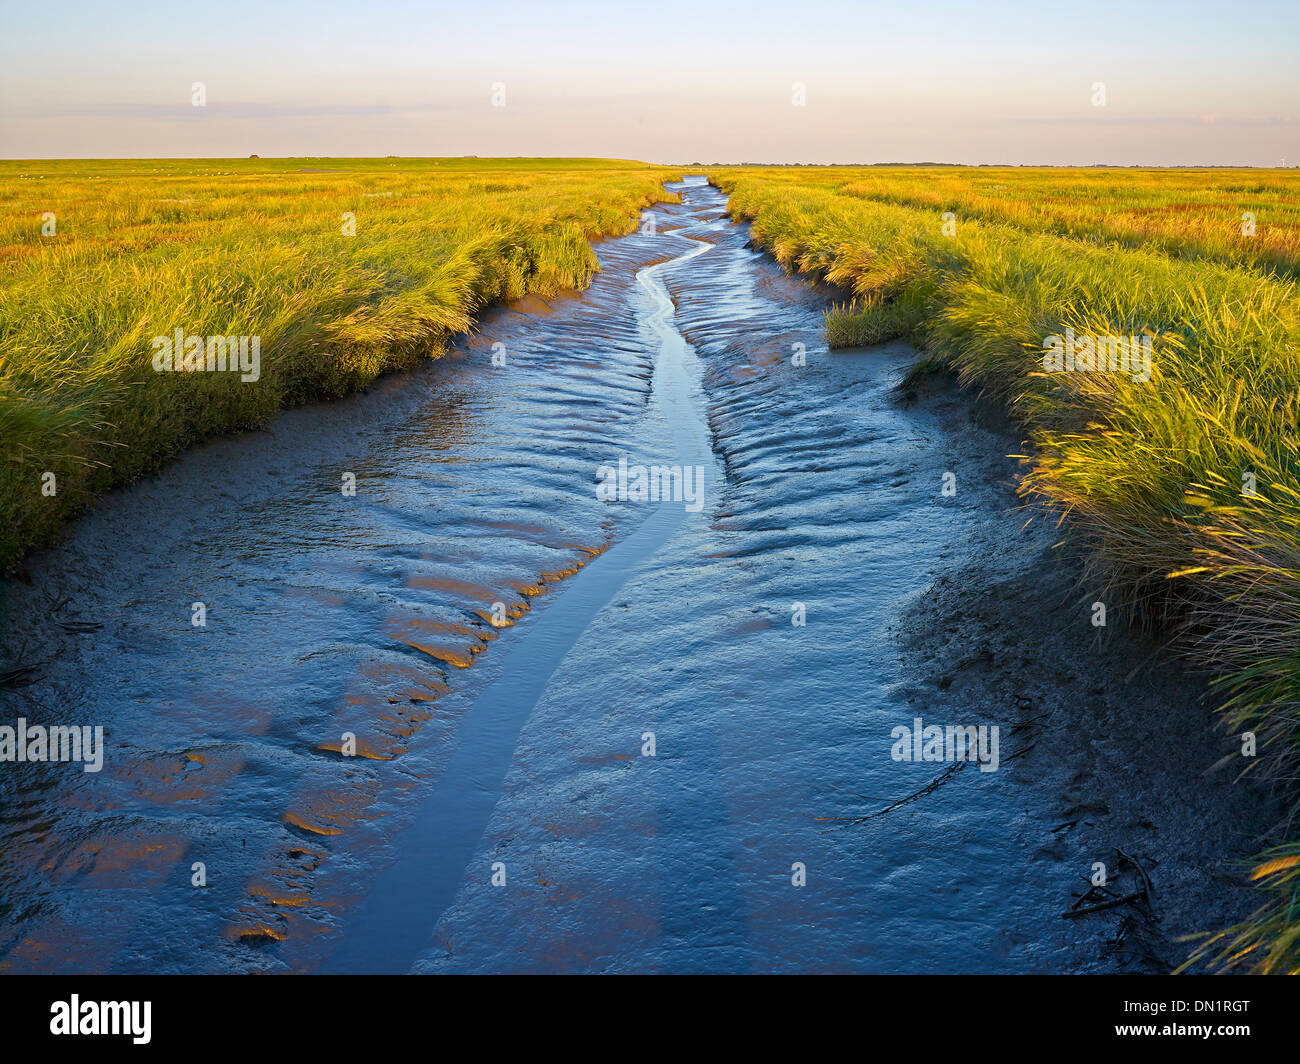 Tidal creek at Westerhever, Eiderstedt peninsula, North Frisia, Schleswig-Holstein, Germany - Stock Image